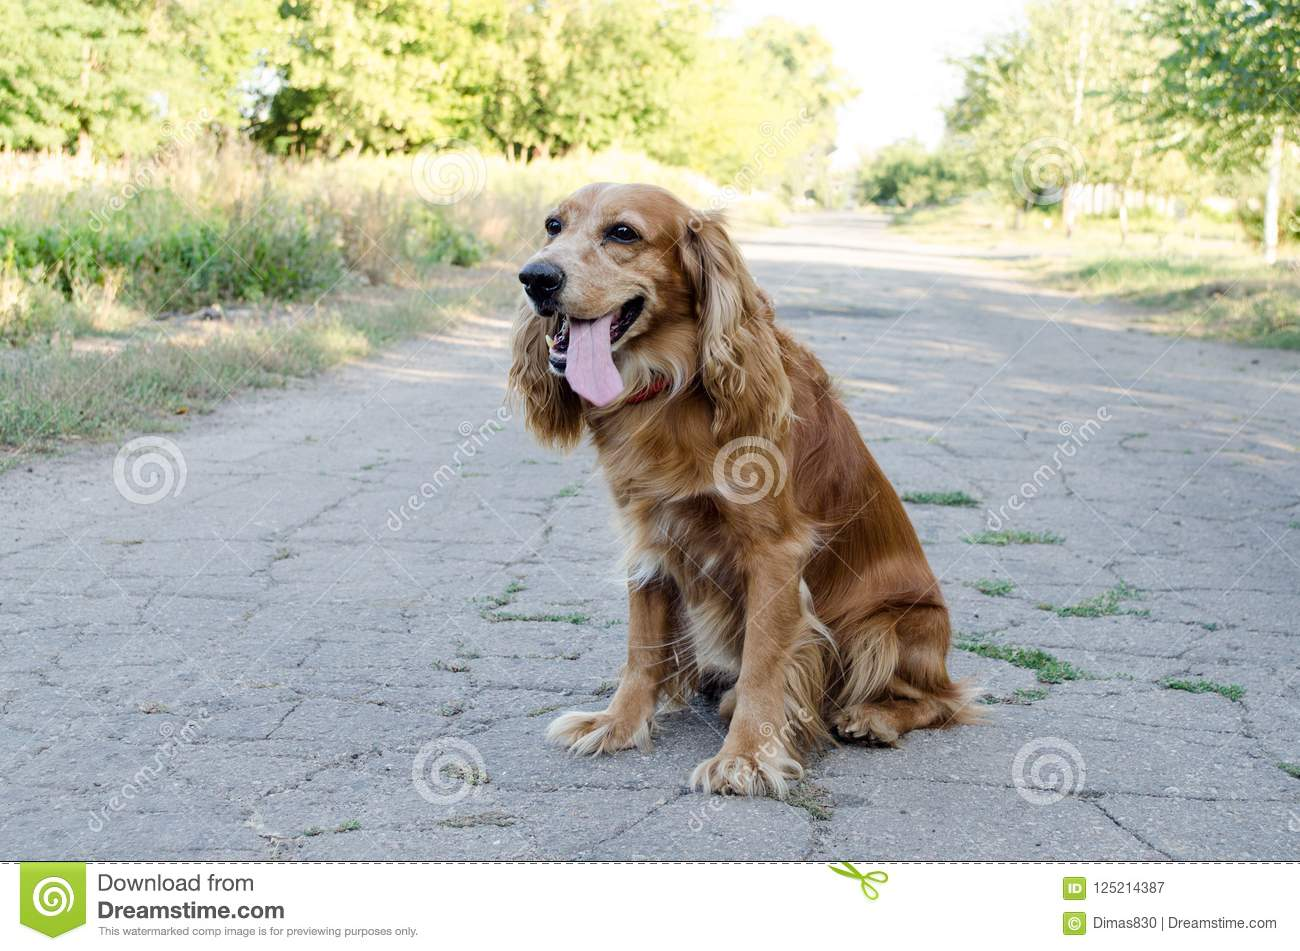 A brown dog spaniel sits on a road with an open mouth against a nature background